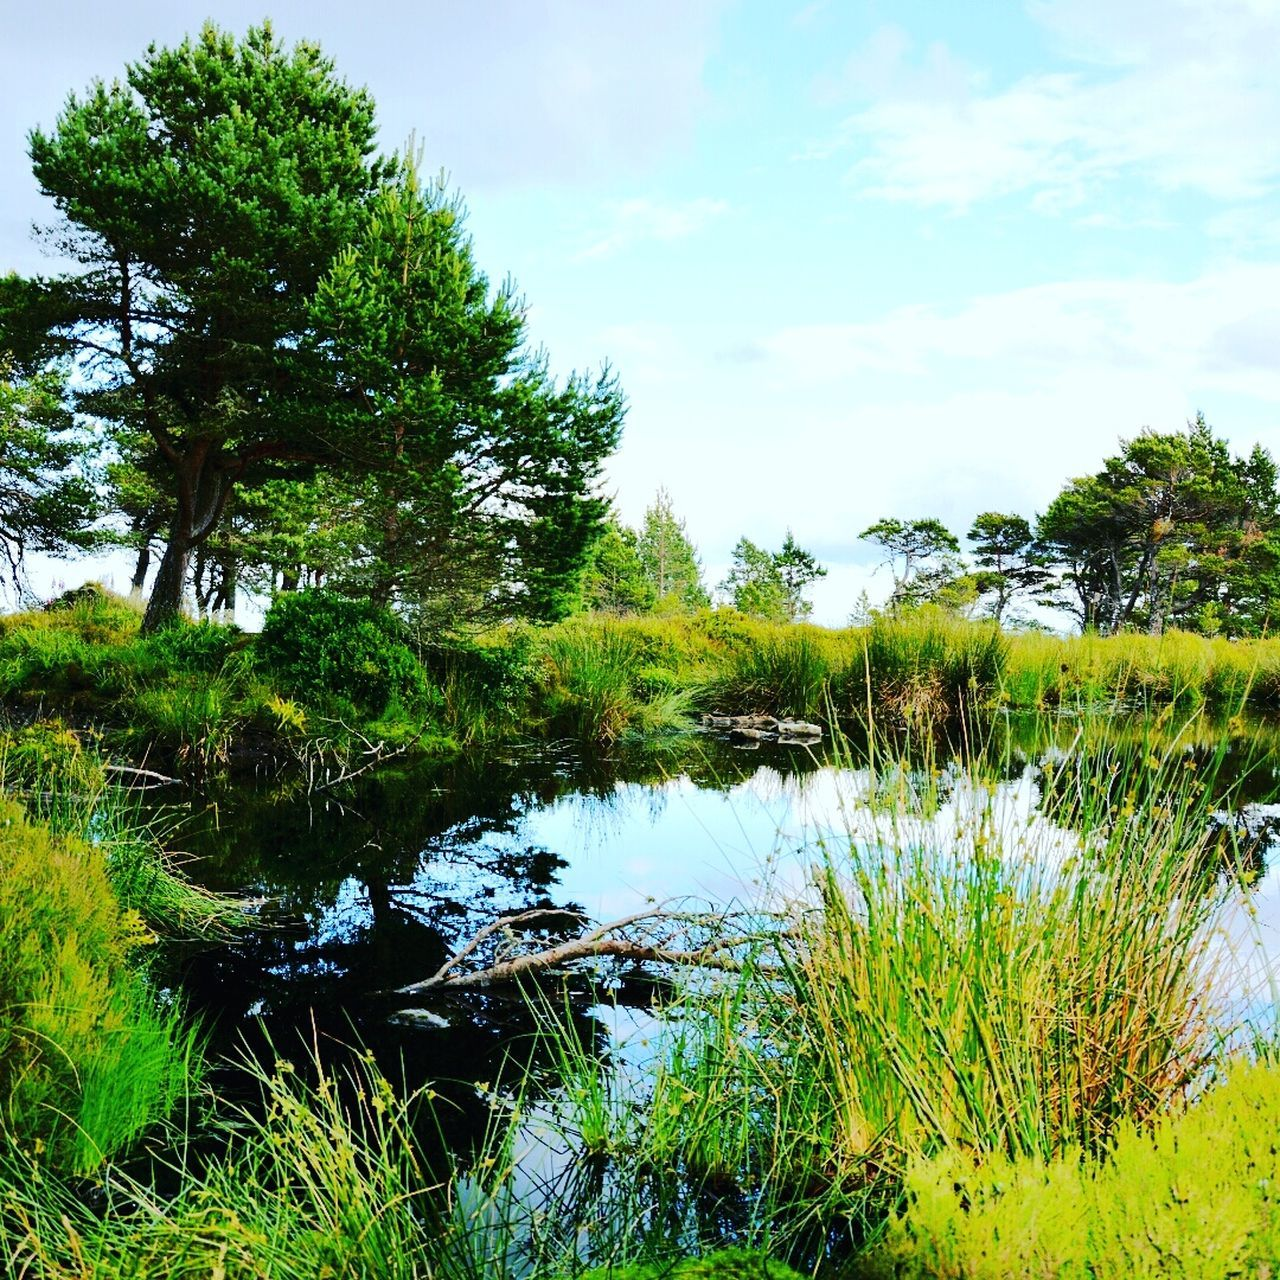 growth, nature, tree, grass, tranquility, lake, water, vegetation, tranquil scene, beauty in nature, outdoors, sky, scenics, forest, landscape, no people, day, blue sky